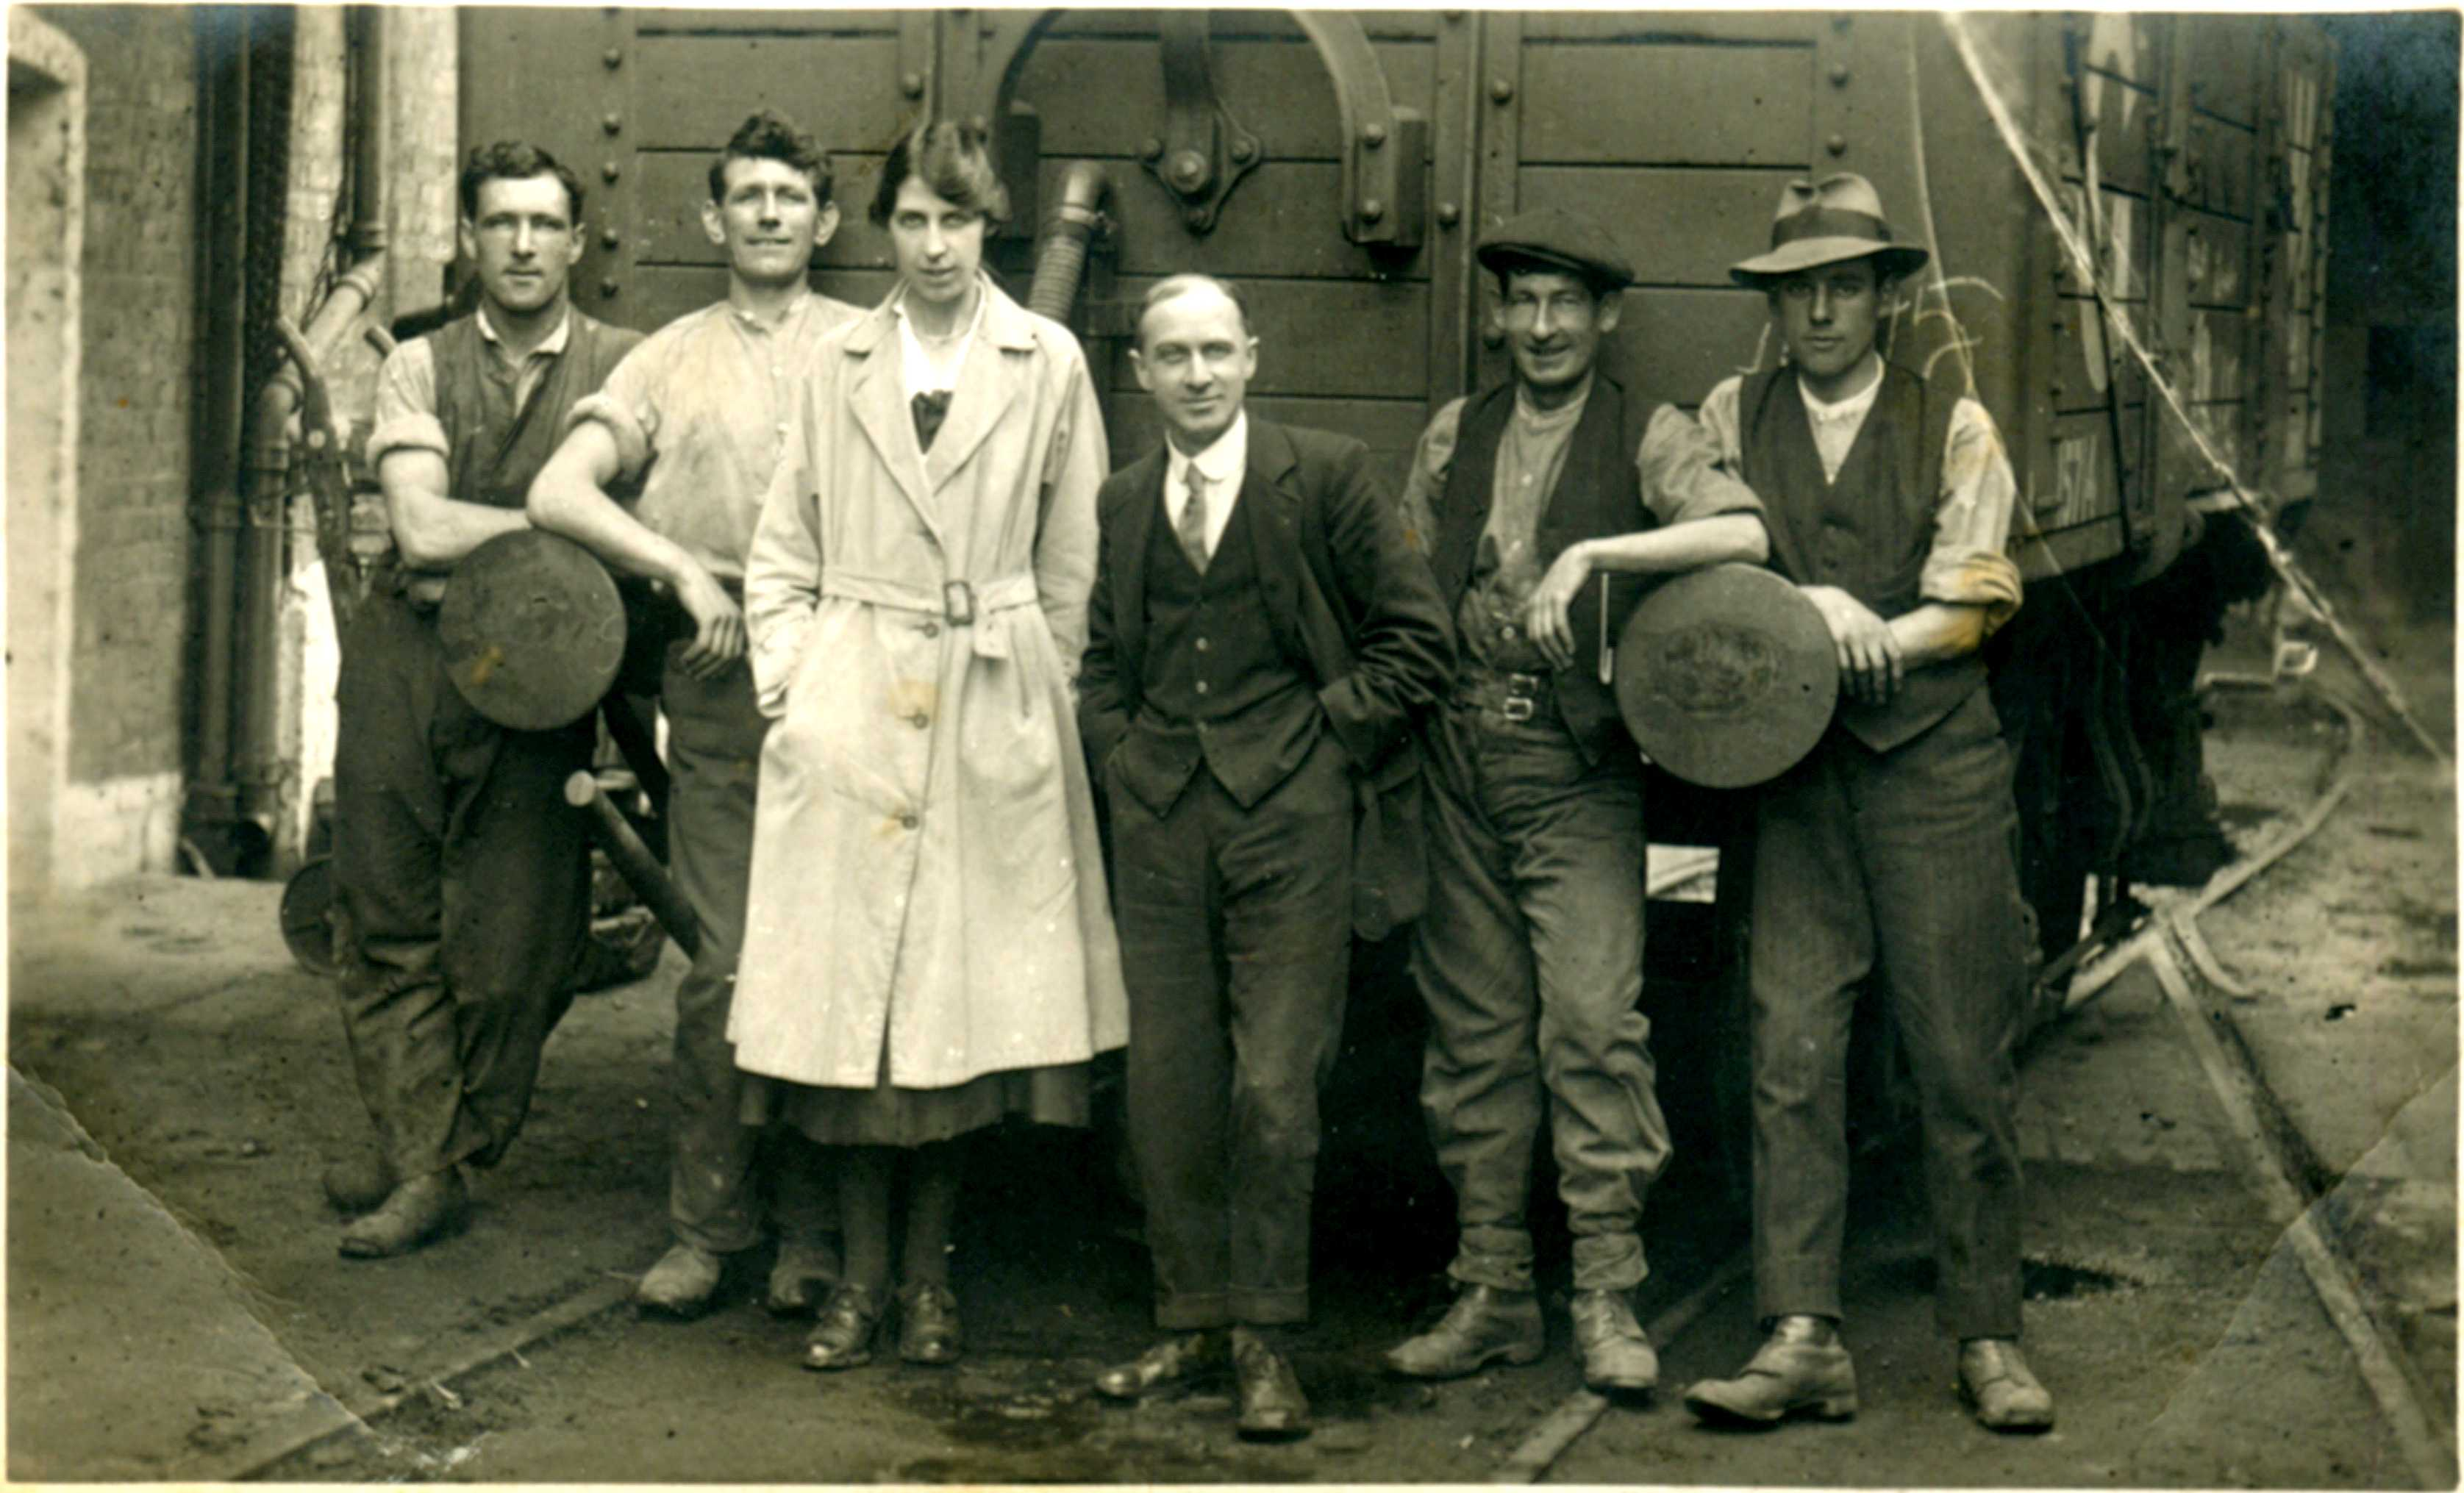 "The inscription is ""Clearing shell cases from Maltings 1920-23"" . A few of the names are given - Bert Colman (far left), Florence Ada Smith (white overall, the subject of this interview), John Youngs (far right). The maltings are the Station Maltings. Railway lines are at the front, and a railway truck behind."